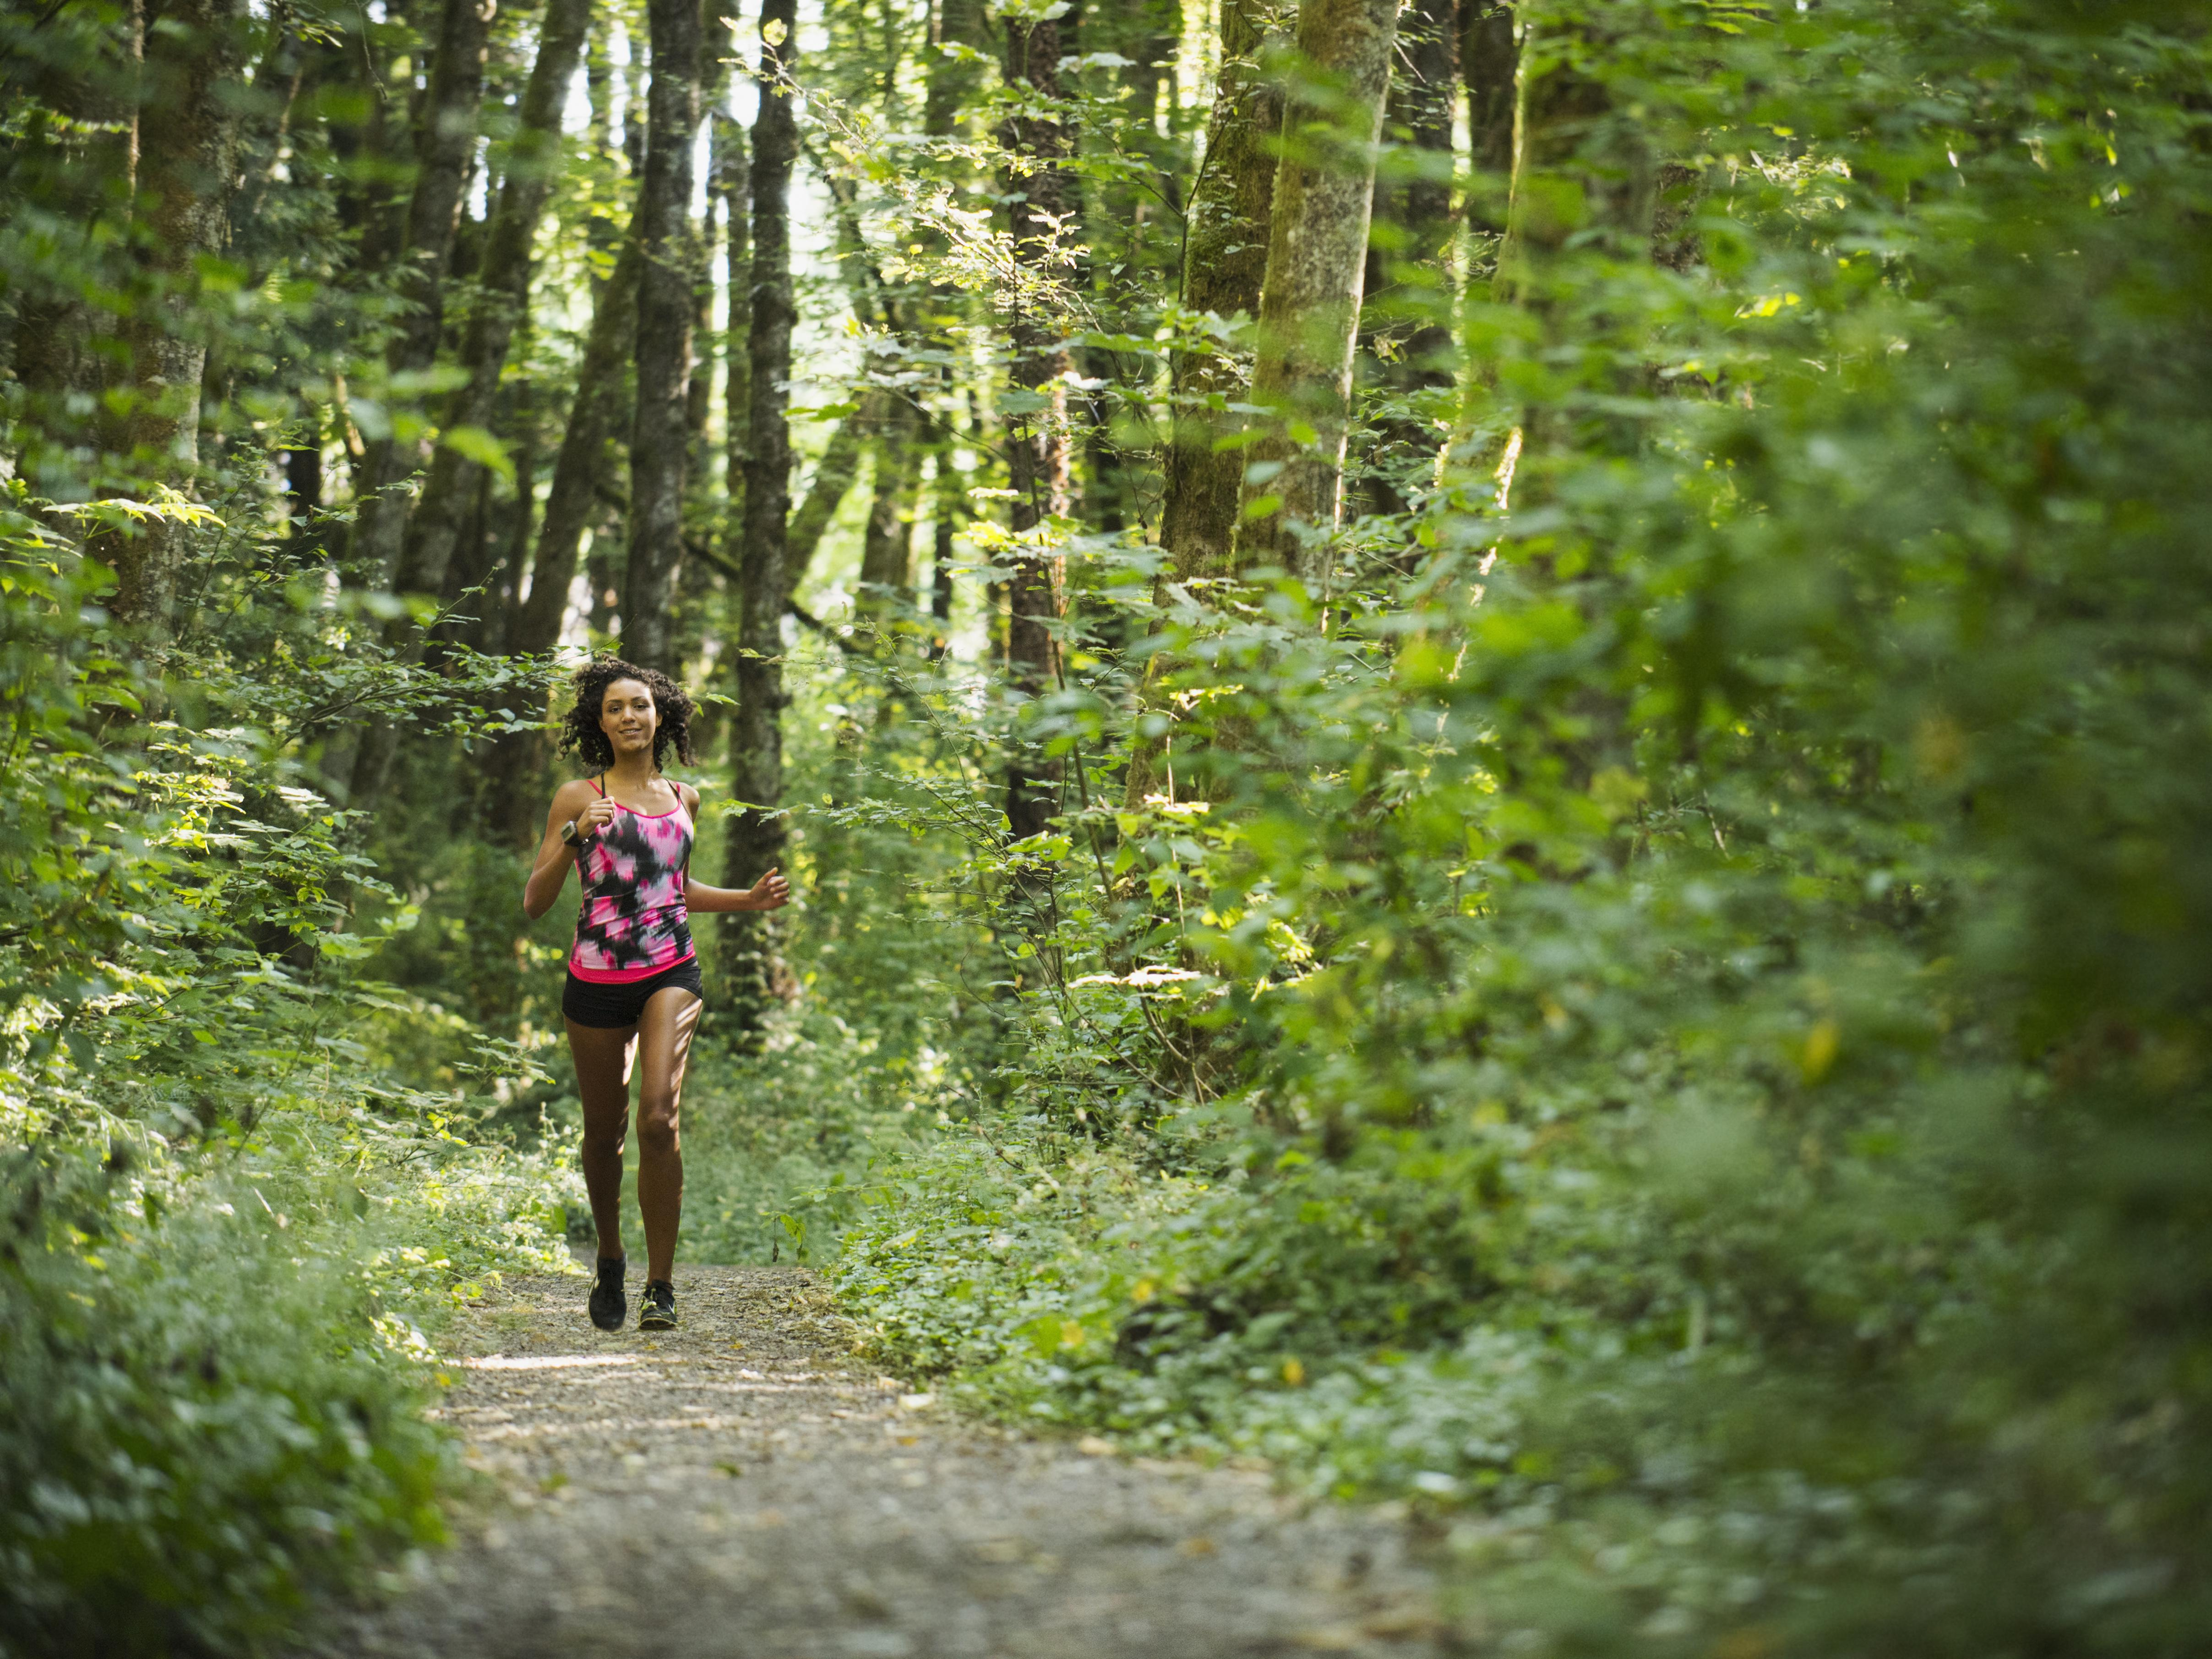 USA, Oregon, Portland, Young women jogging in forest